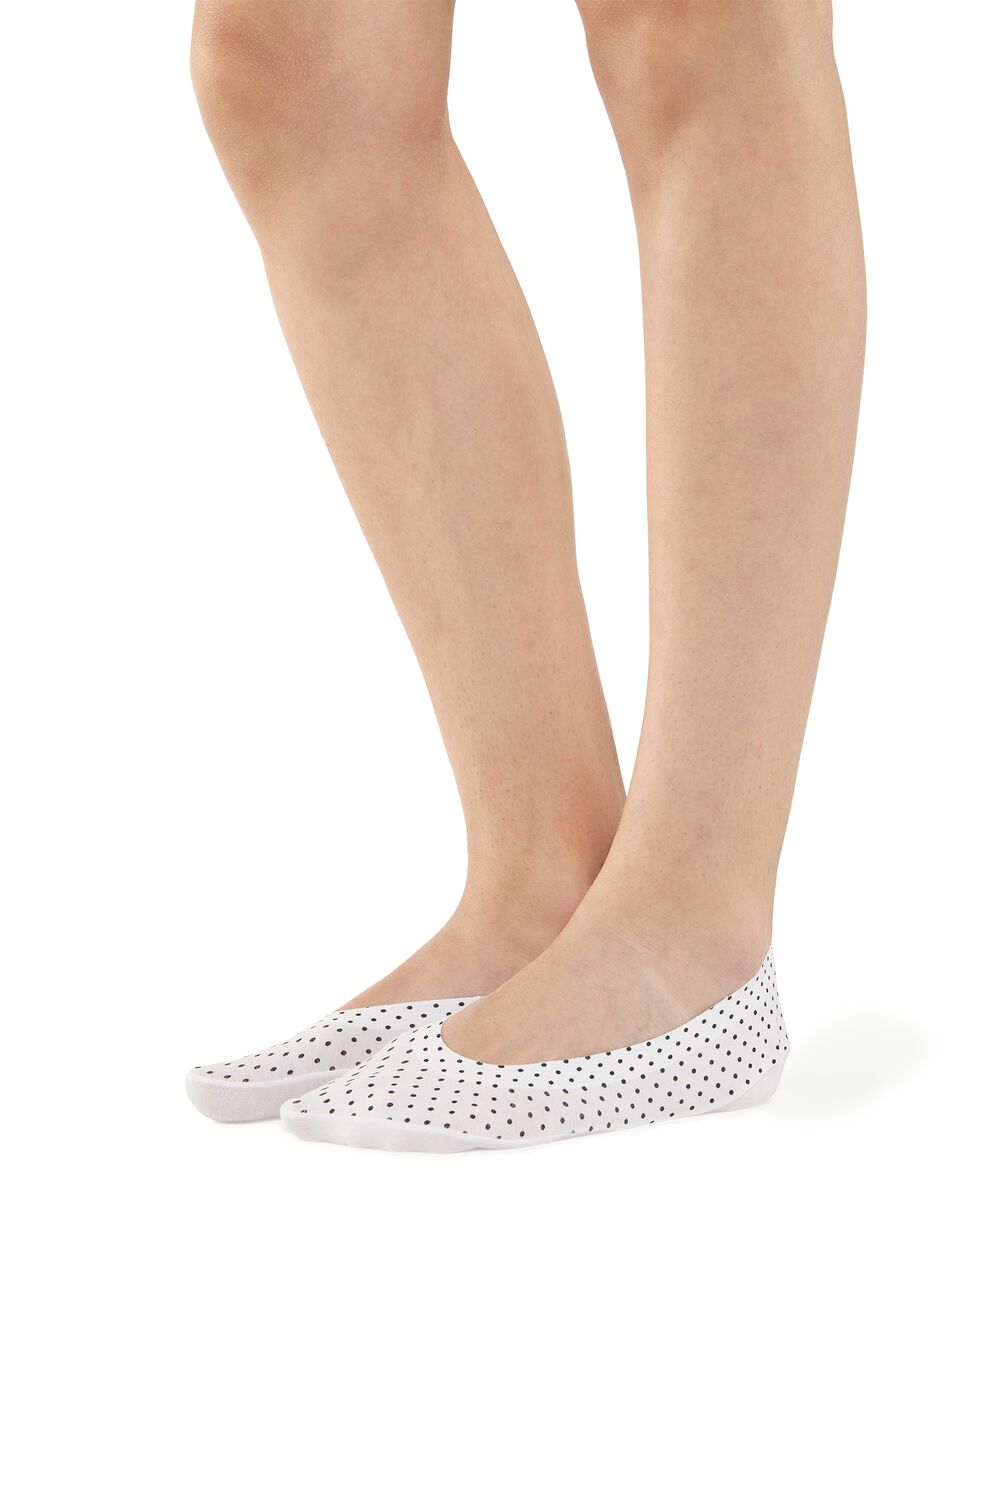 Patterned Cotton Shoe Liners